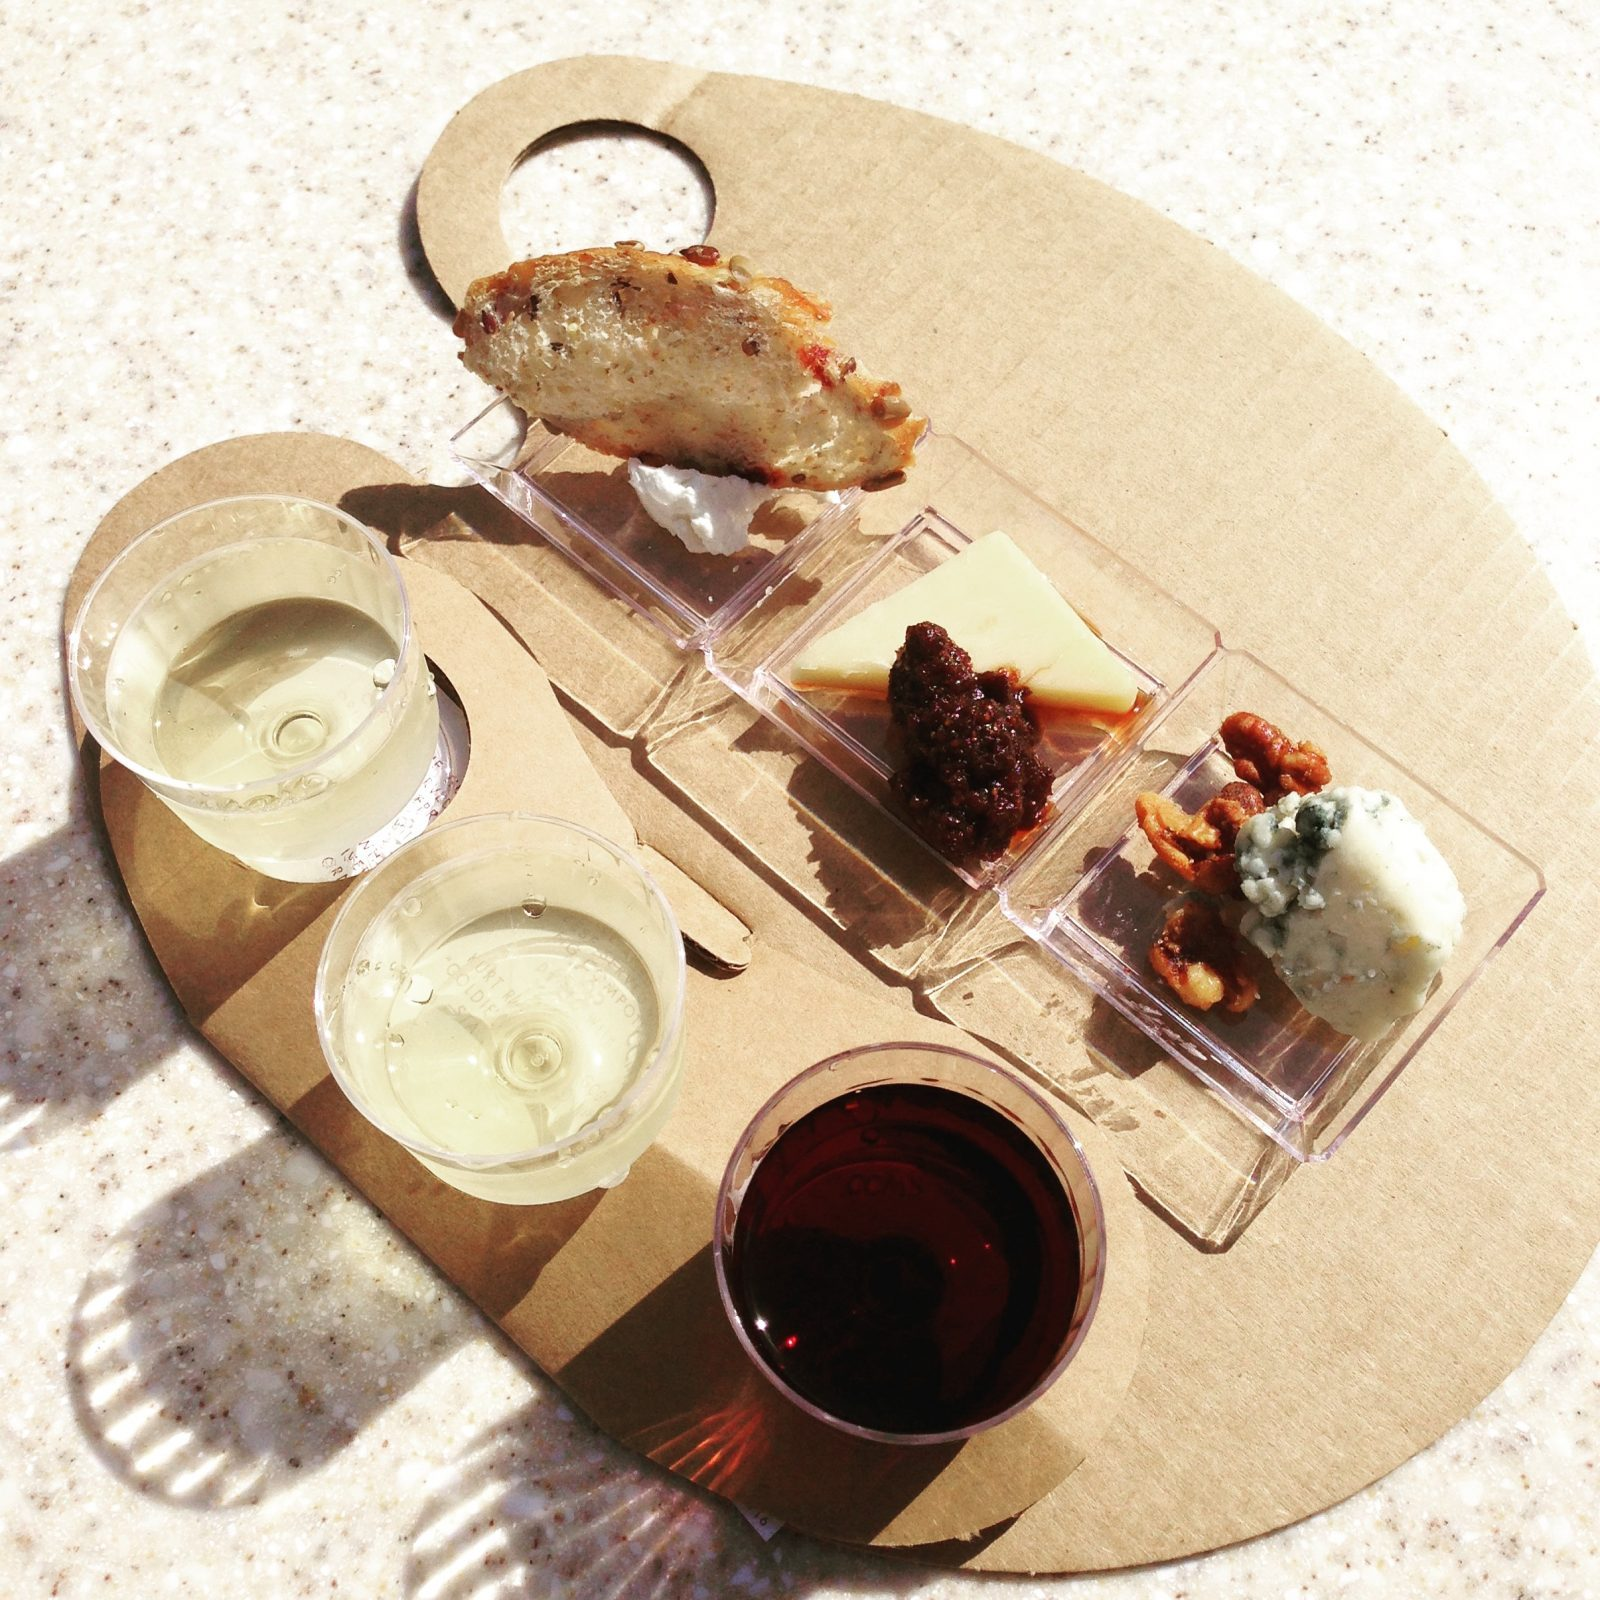 wine and food samples